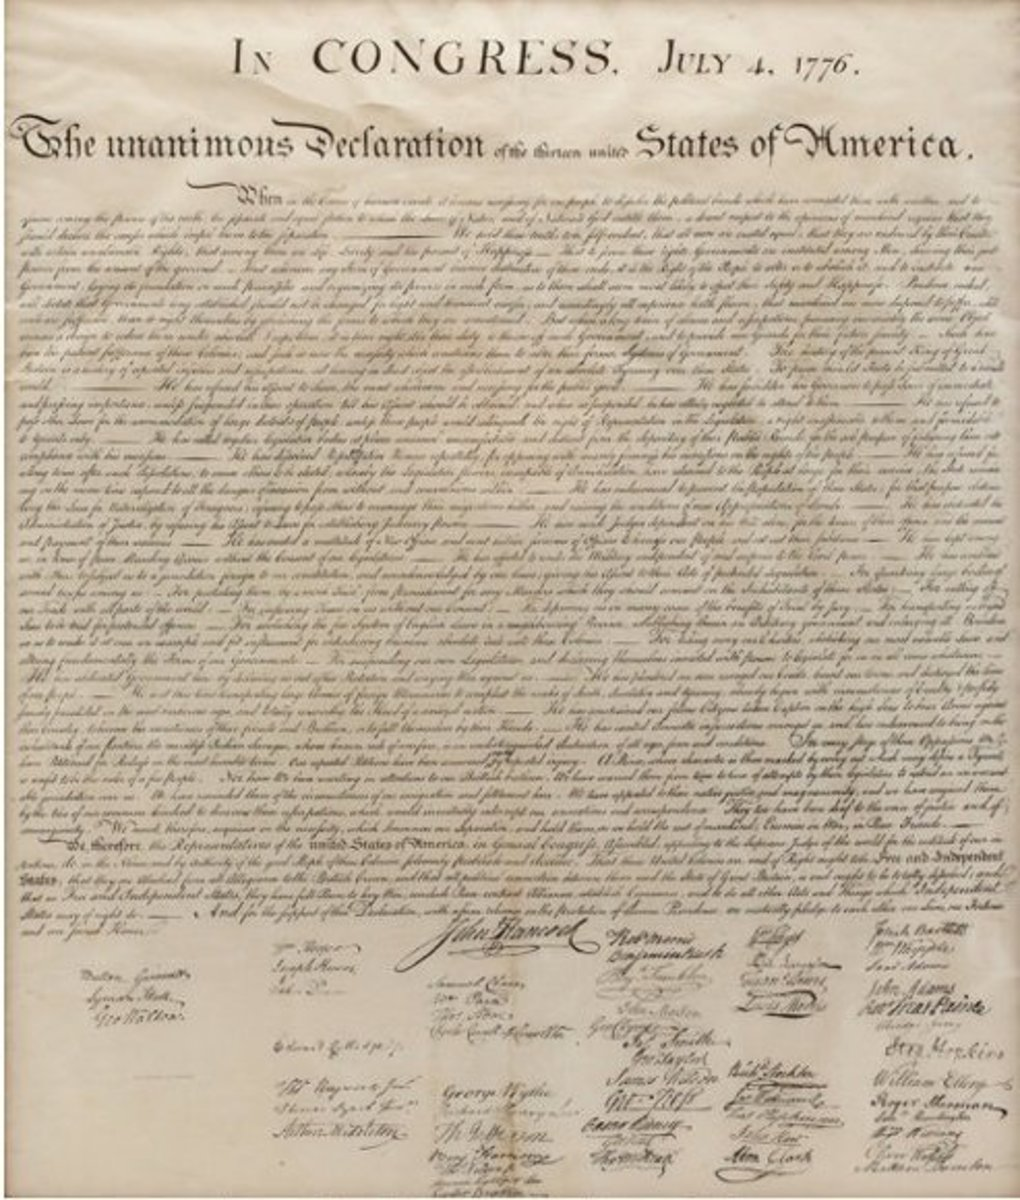 The Declaration of Independence with signatures of the delegates.